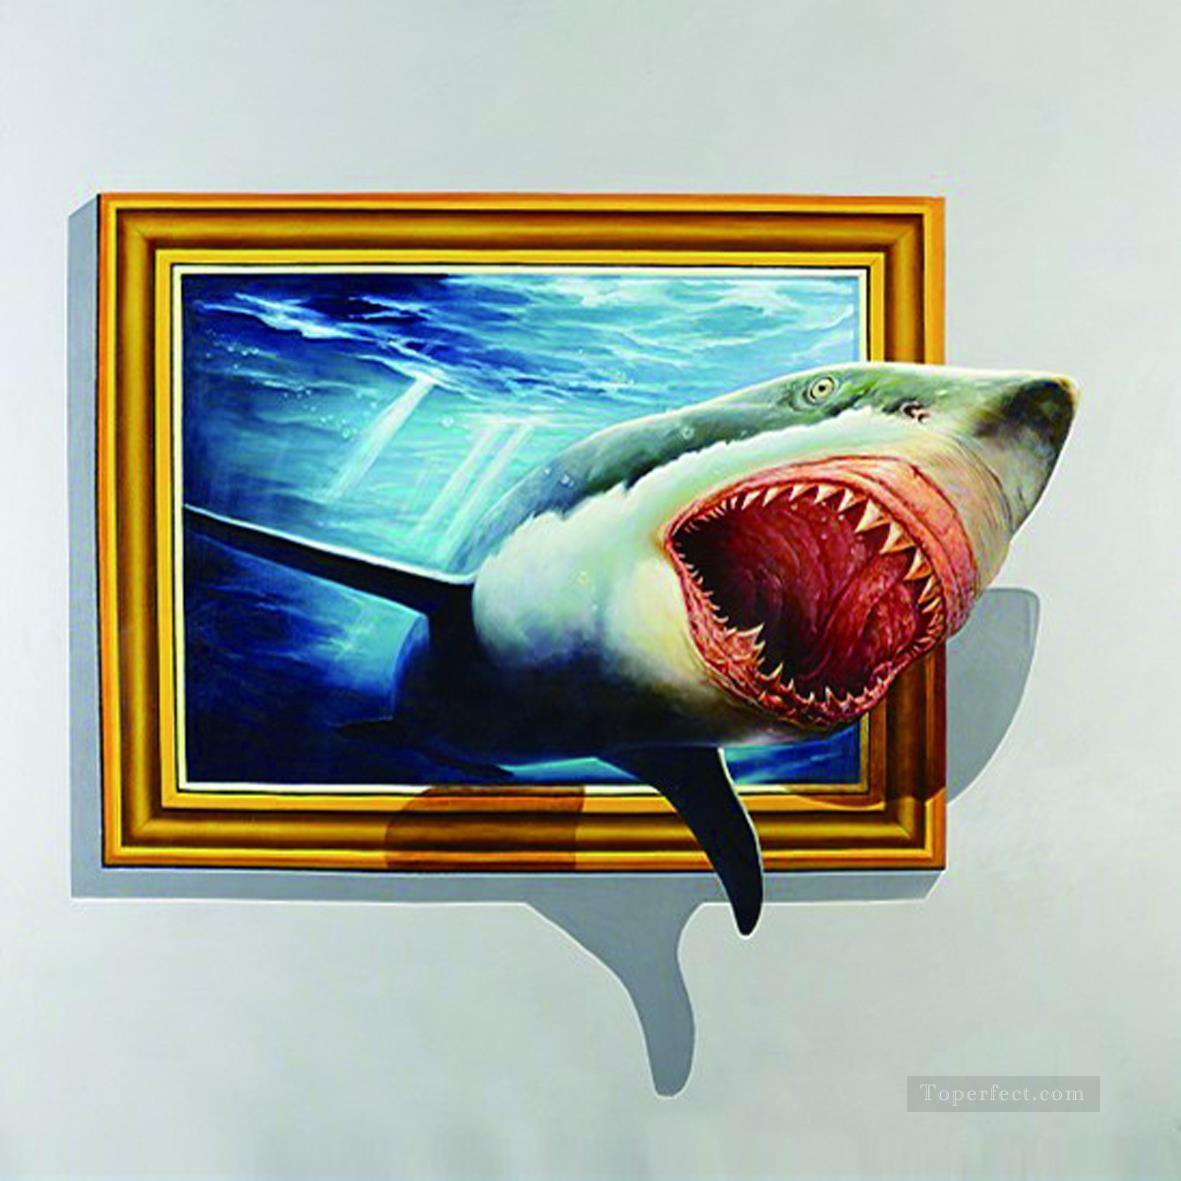 shark out of frame 3D Painting in Oil for Sale